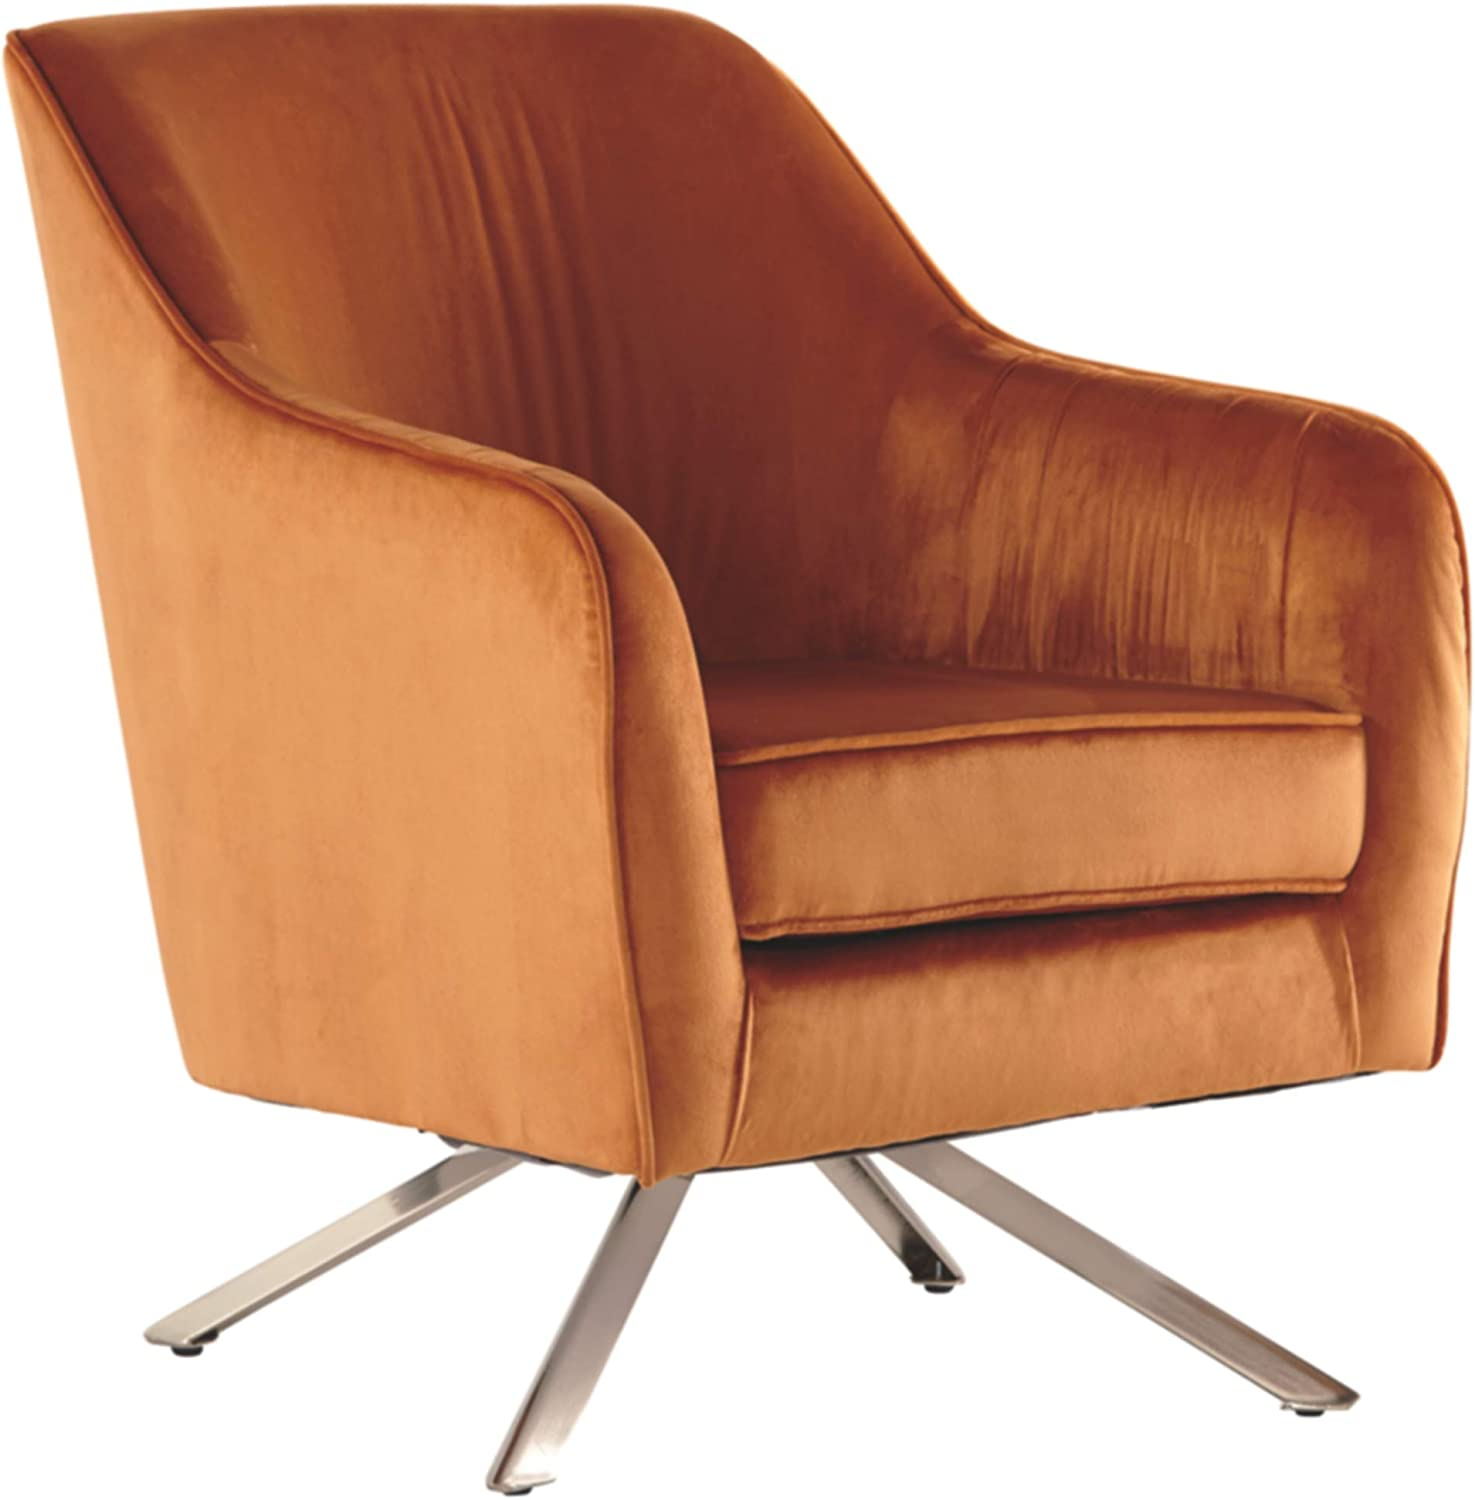 Signature Design by Ashley Hangar Accent Chair, Orange